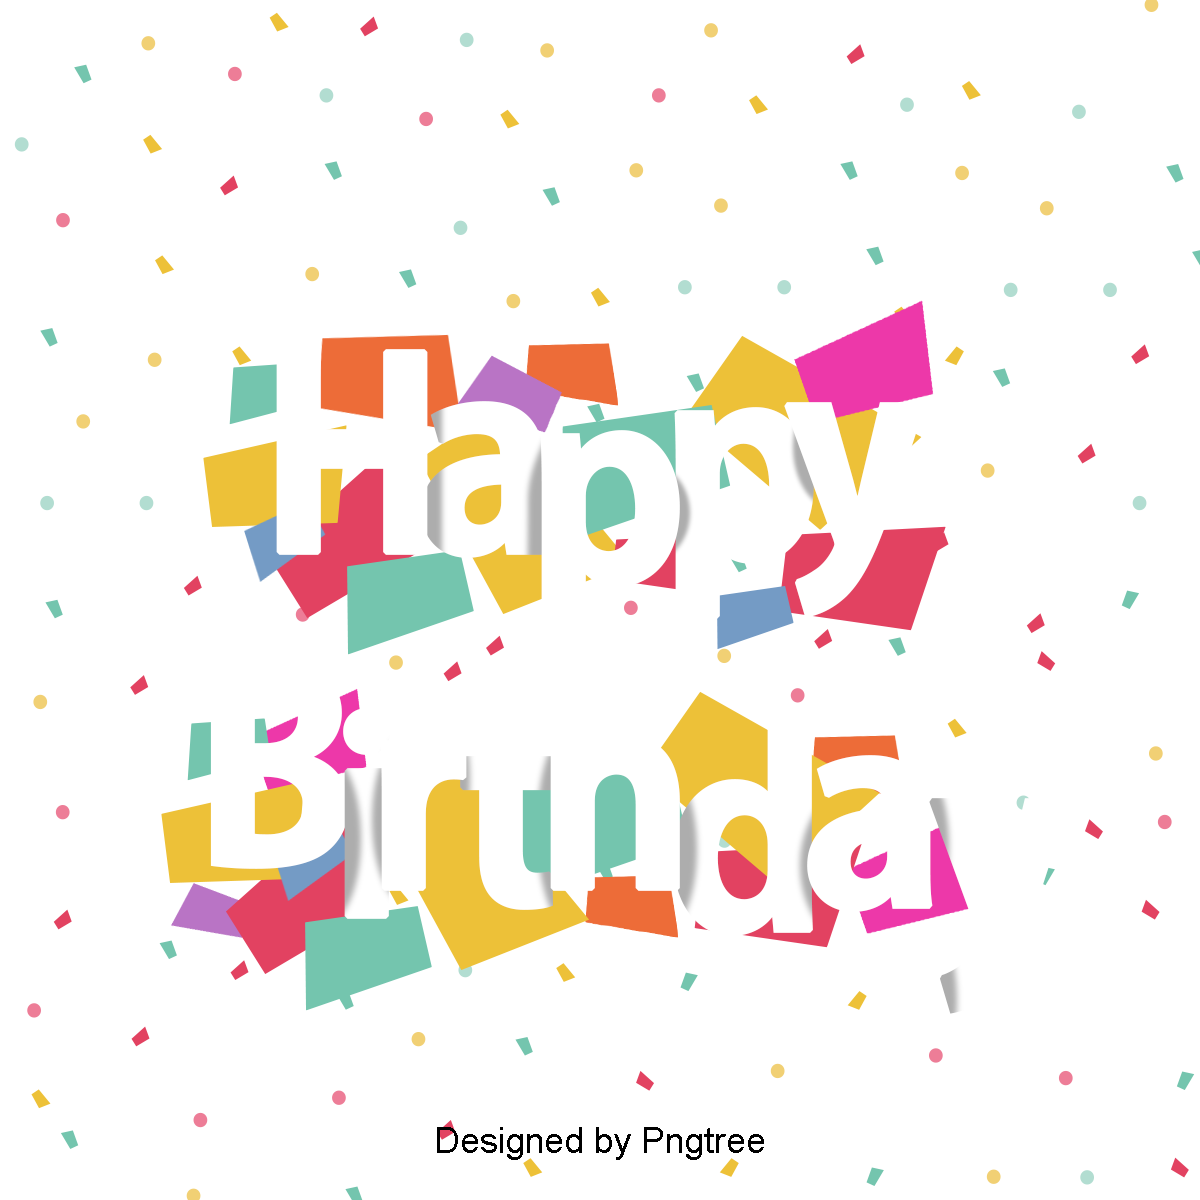 Happy Birthday Party Happy Present Png Transparent Clipart Image And Psd File For Free Download In 2020 Happy Birthday Png Happy Birthday Logo Happy Birthday Font